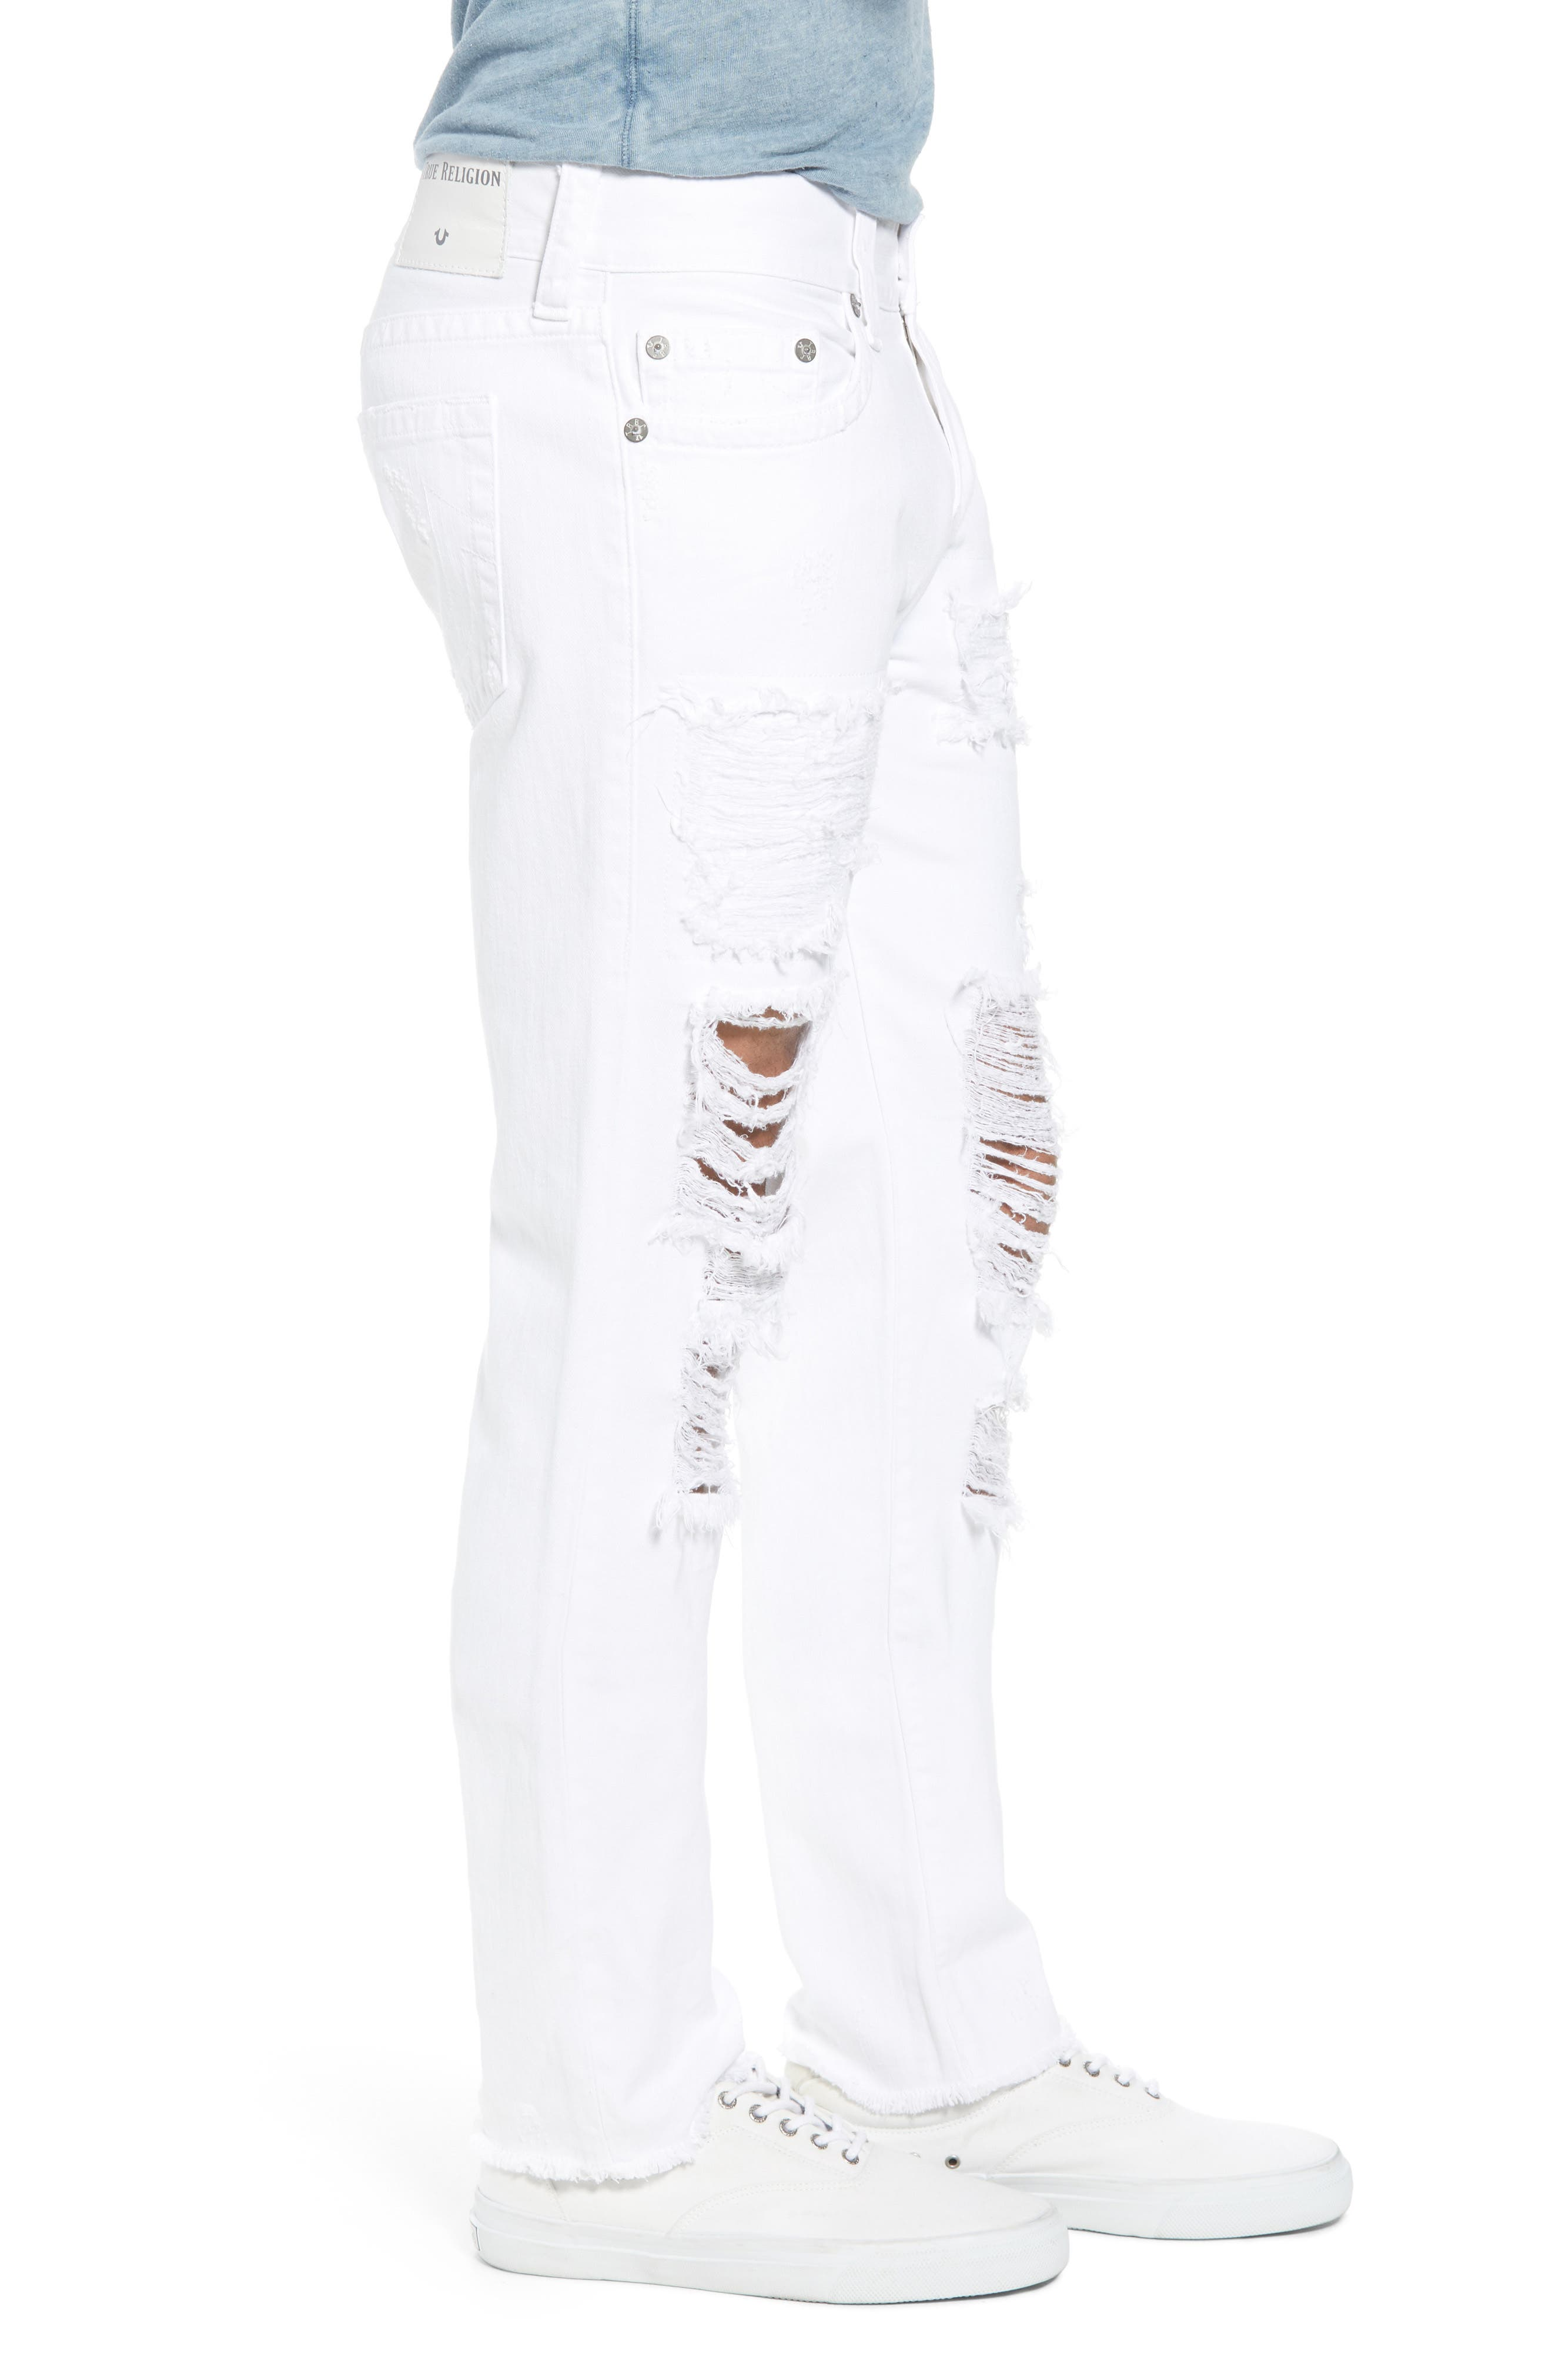 Rocco Skinny Fit jeans,                             Alternate thumbnail 2, color,                             White Volcanic Ash